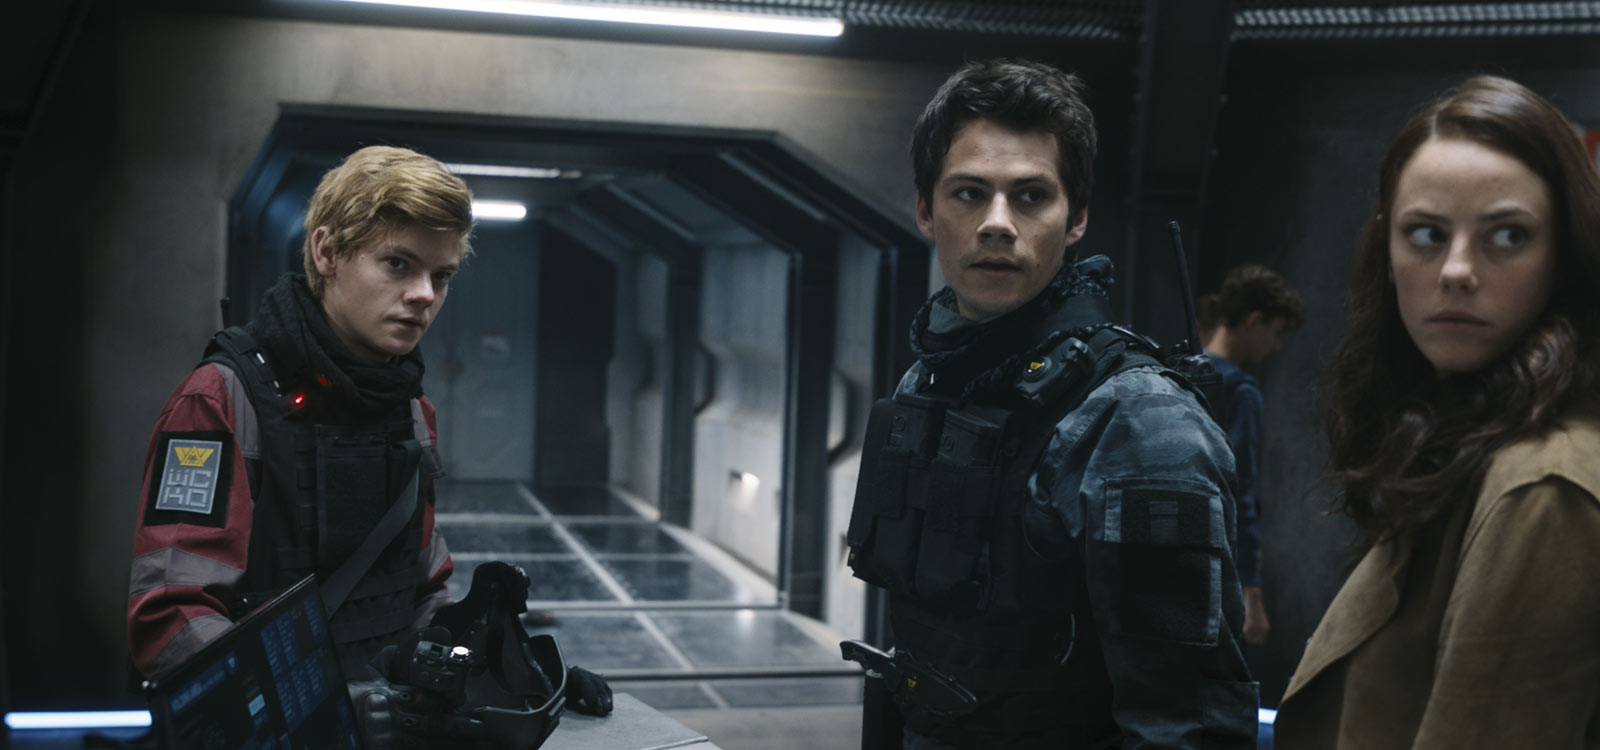 Thomas Brodie-Sangster, Kaya Scodelario, and Dylan O'Brien in Maze Runner: The Death Cure (2018)